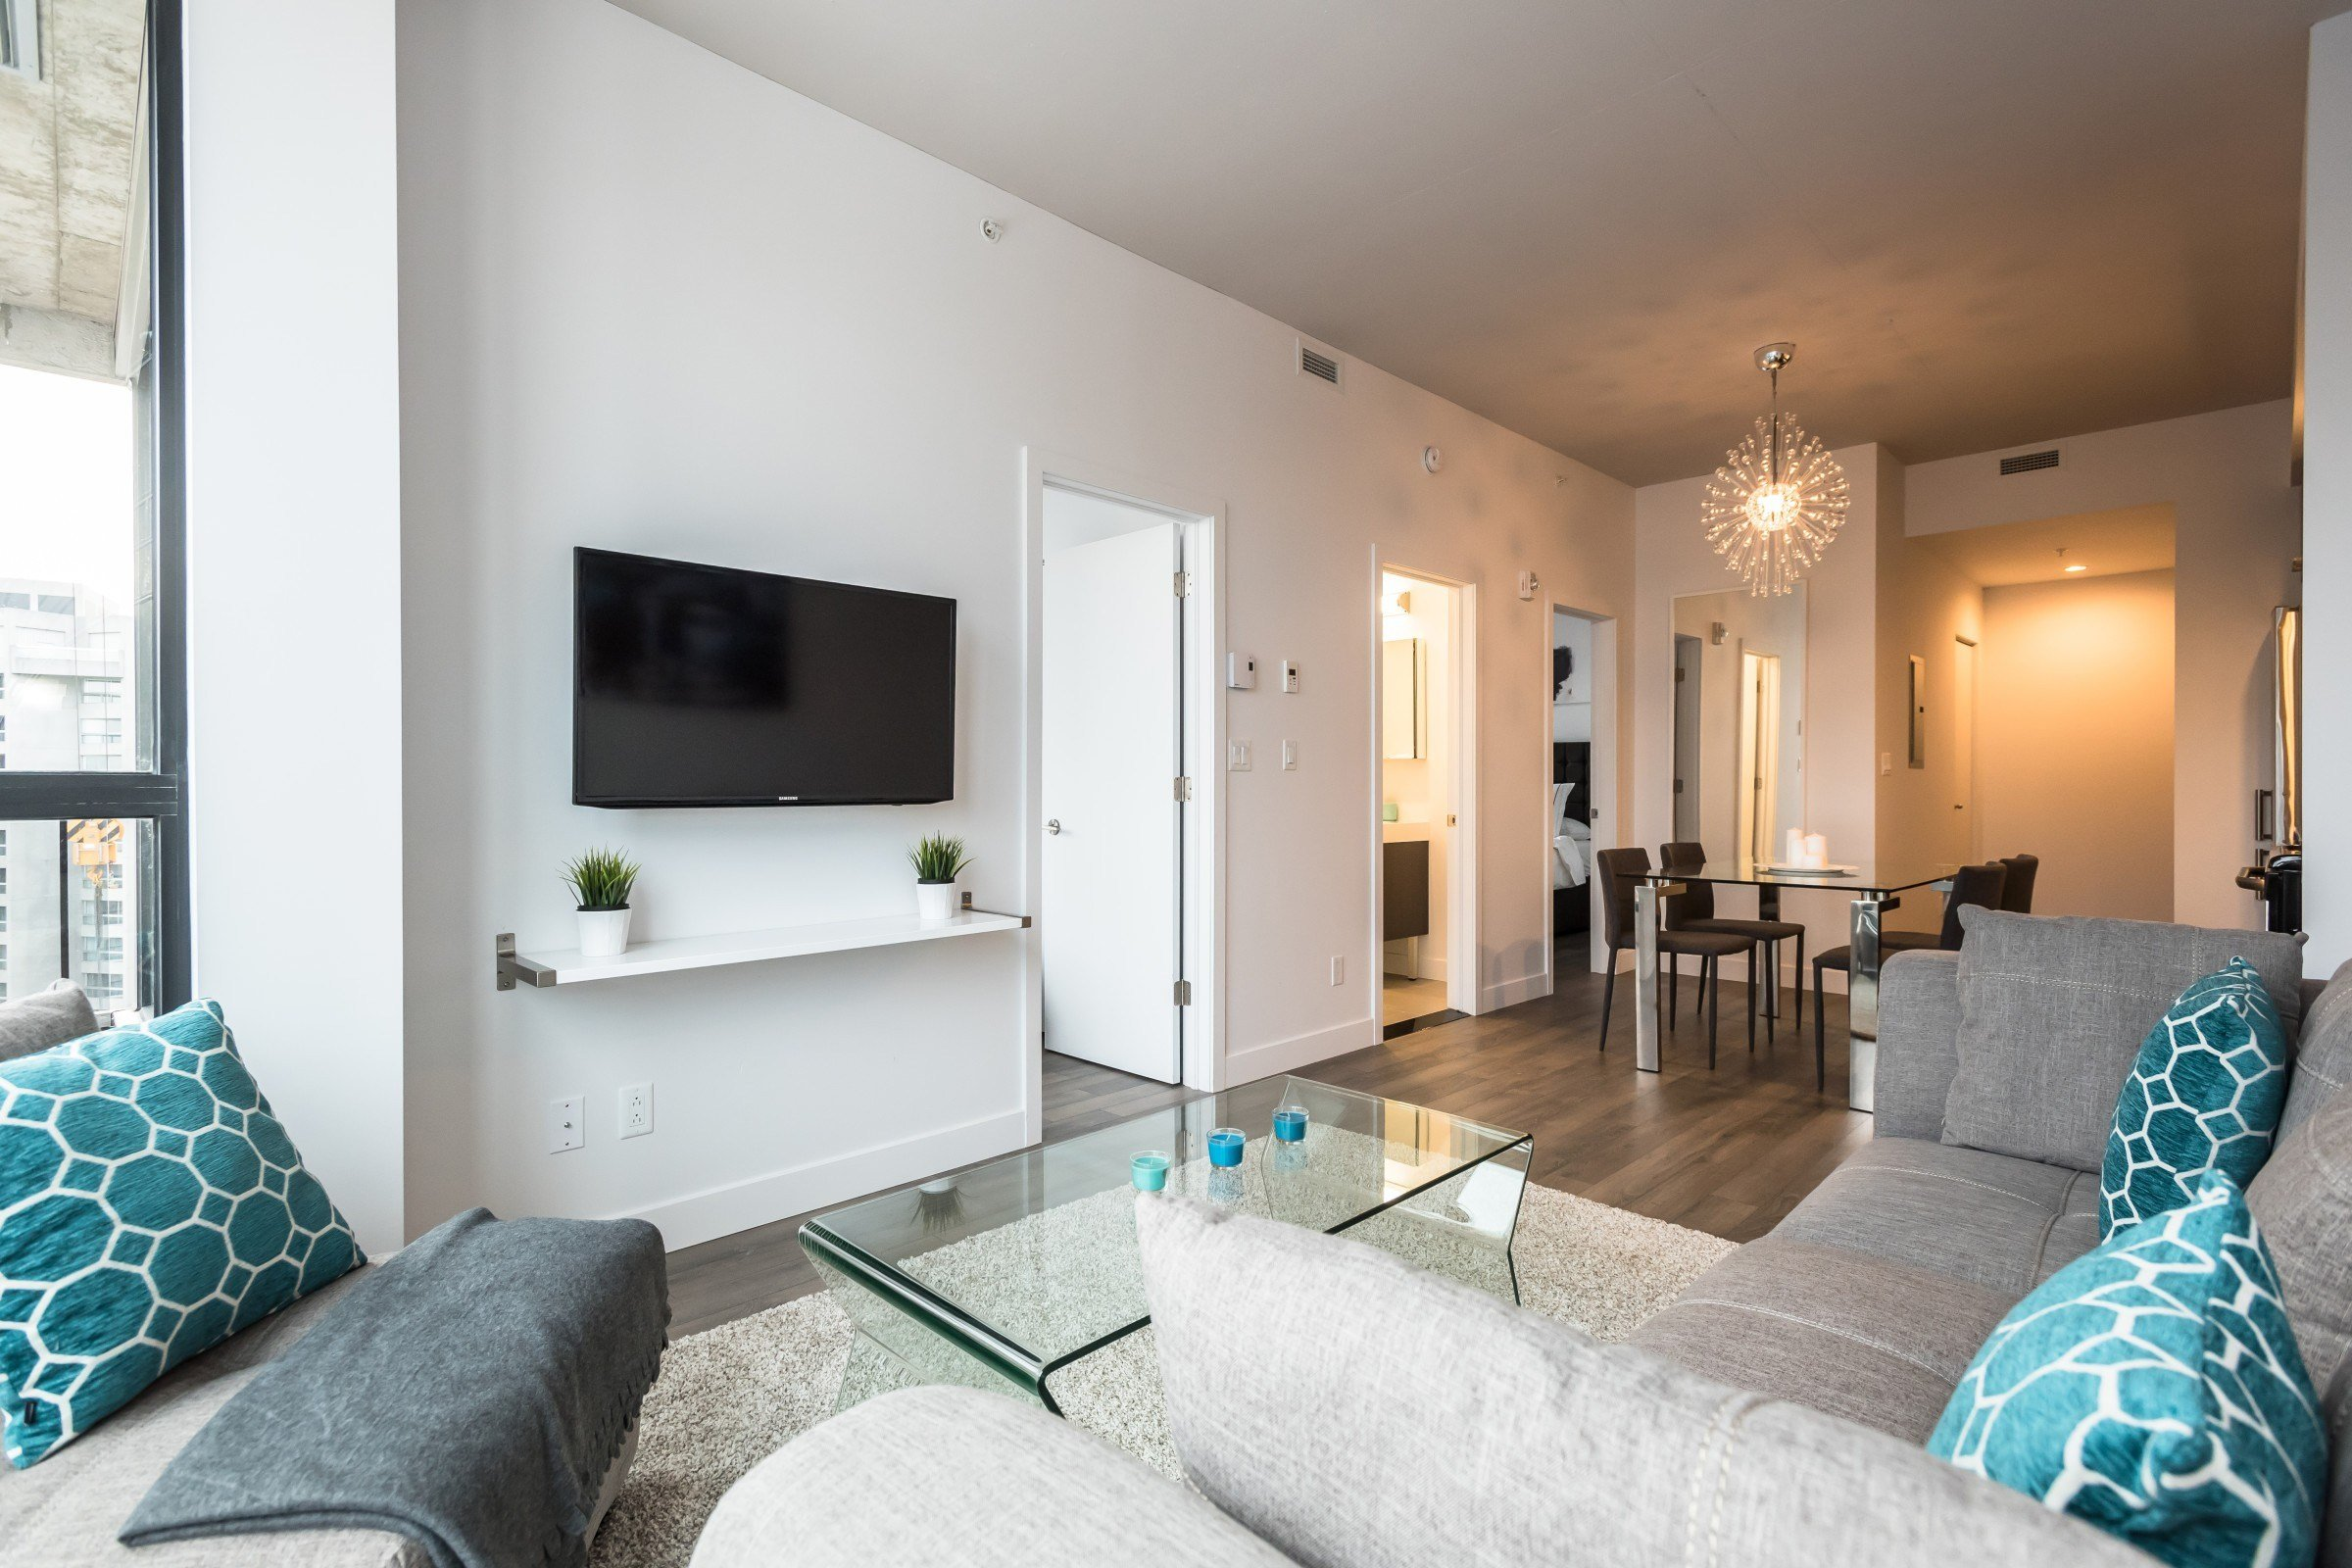 Best Awesome Apartment 2 Bedroom Ottawa Furnitureinredsea Com With Pictures